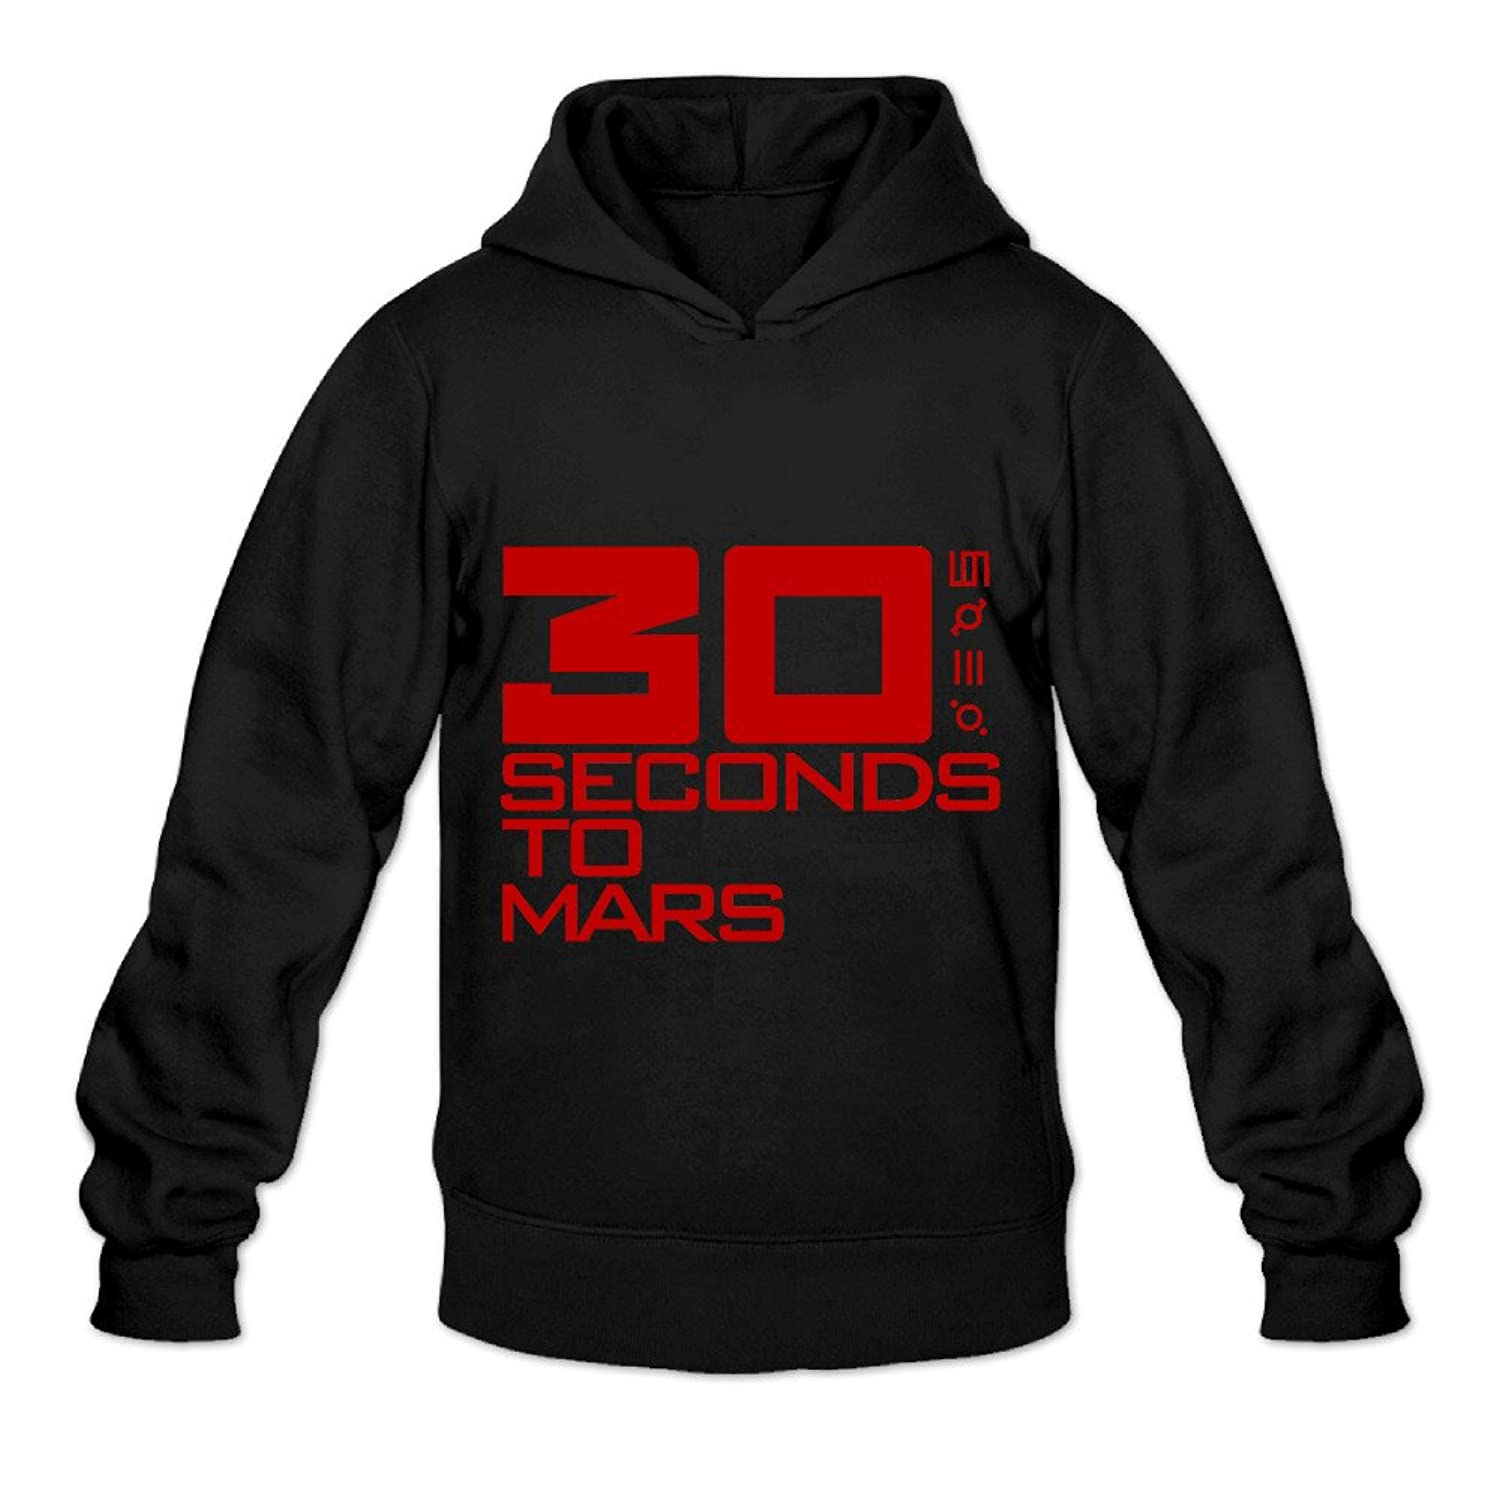 30 Seconds To Mars Men's Sweatshirt